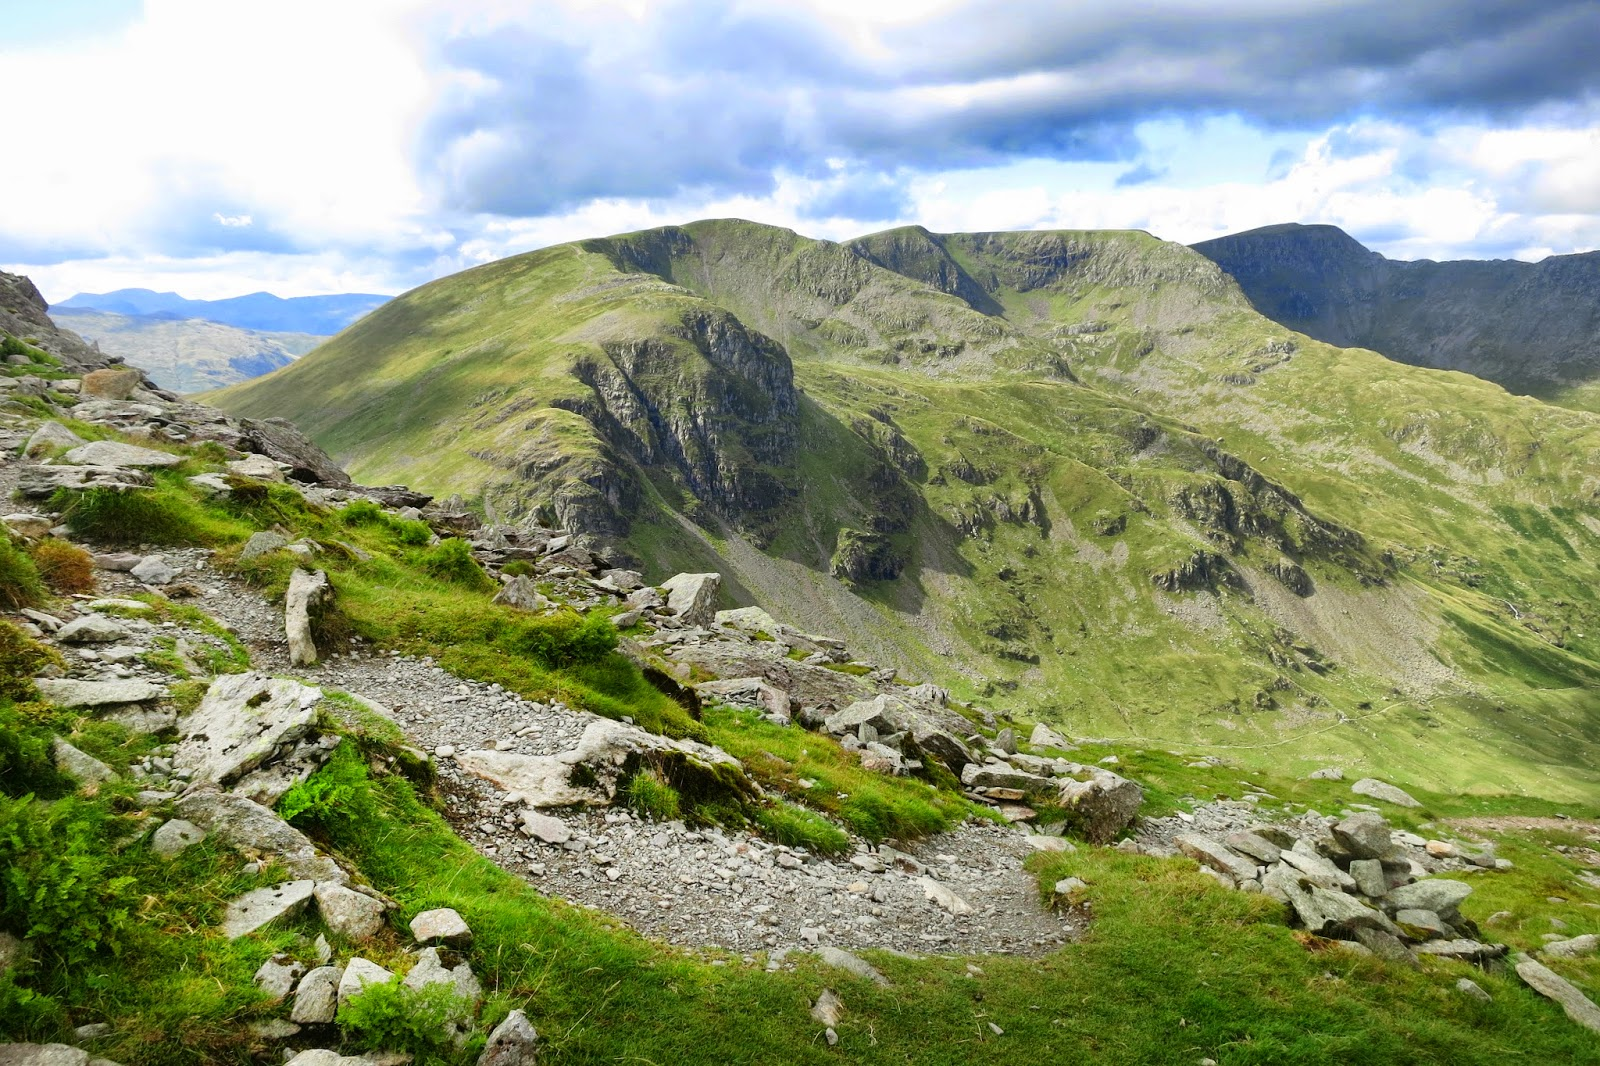 Dollywagon Pike, Nethermost Pike - with Helvellyn and striding edge in the far distance.